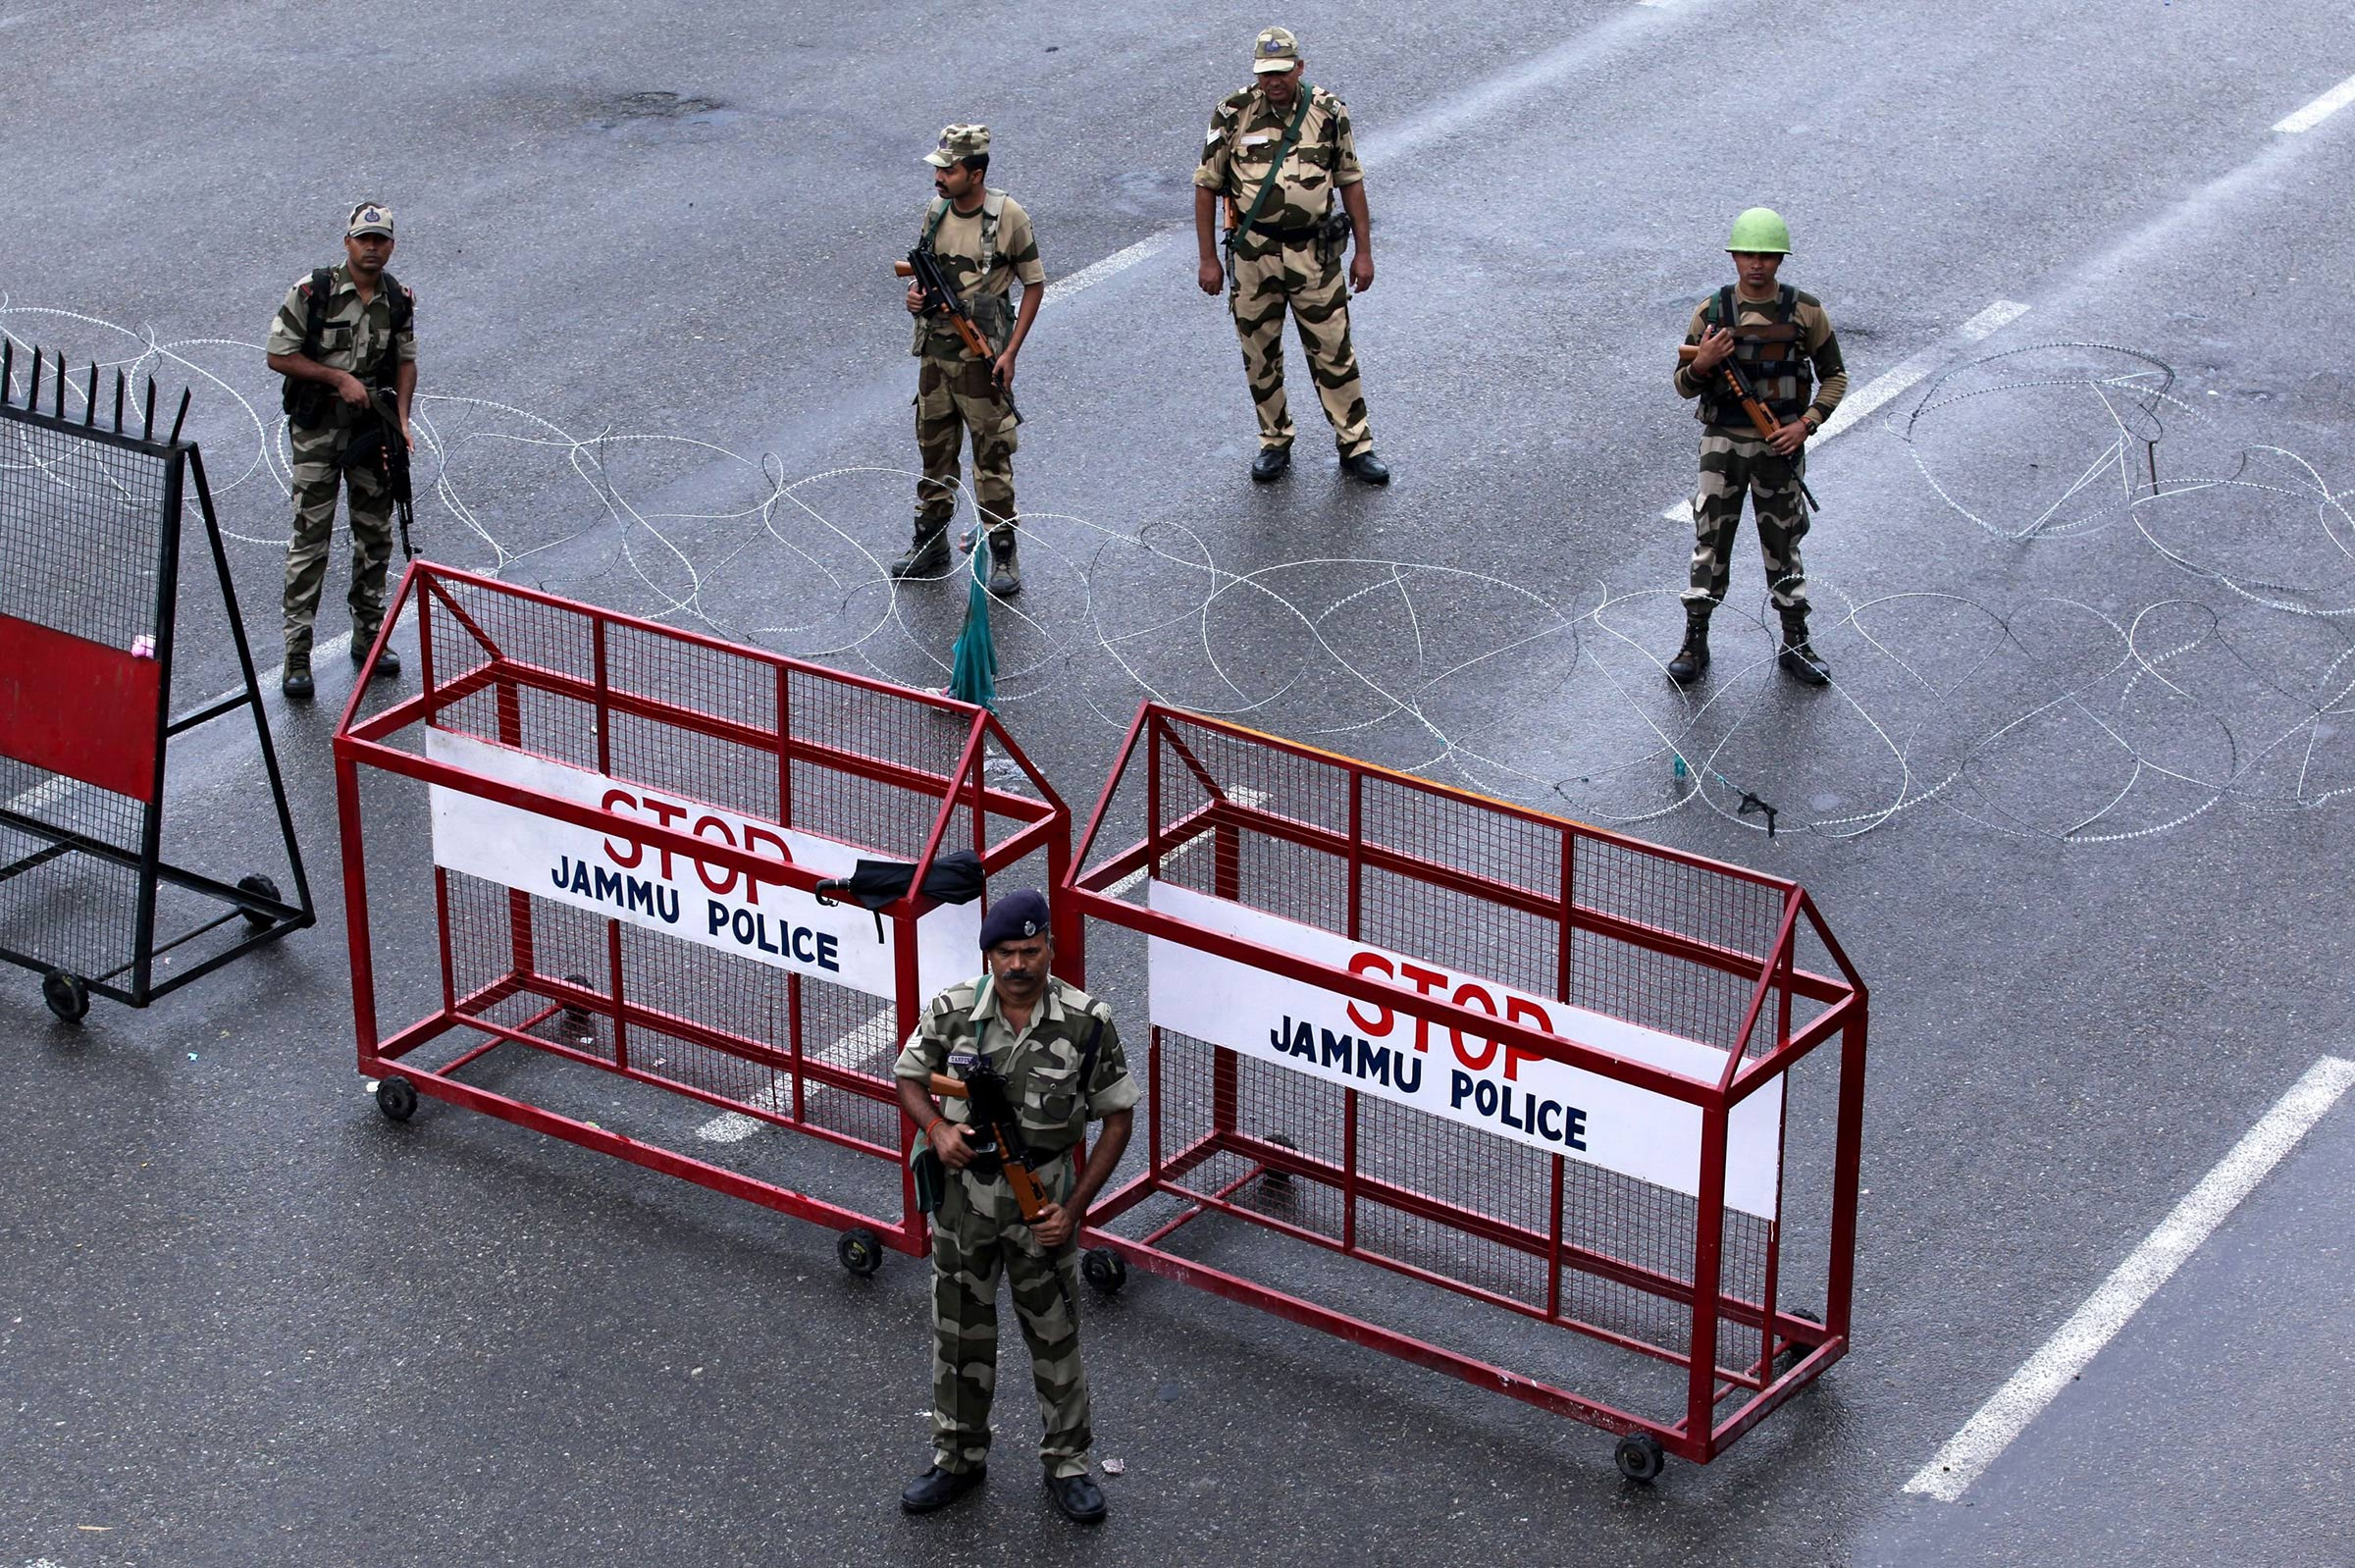 Security personnel stand guard at a roadblock in Jammu on August 7. A protester died after being chased by police during a curfew in Kashmir's main city, left in turmoil by an Indian government move to tighten control over the restive region, a police official said on August 7.